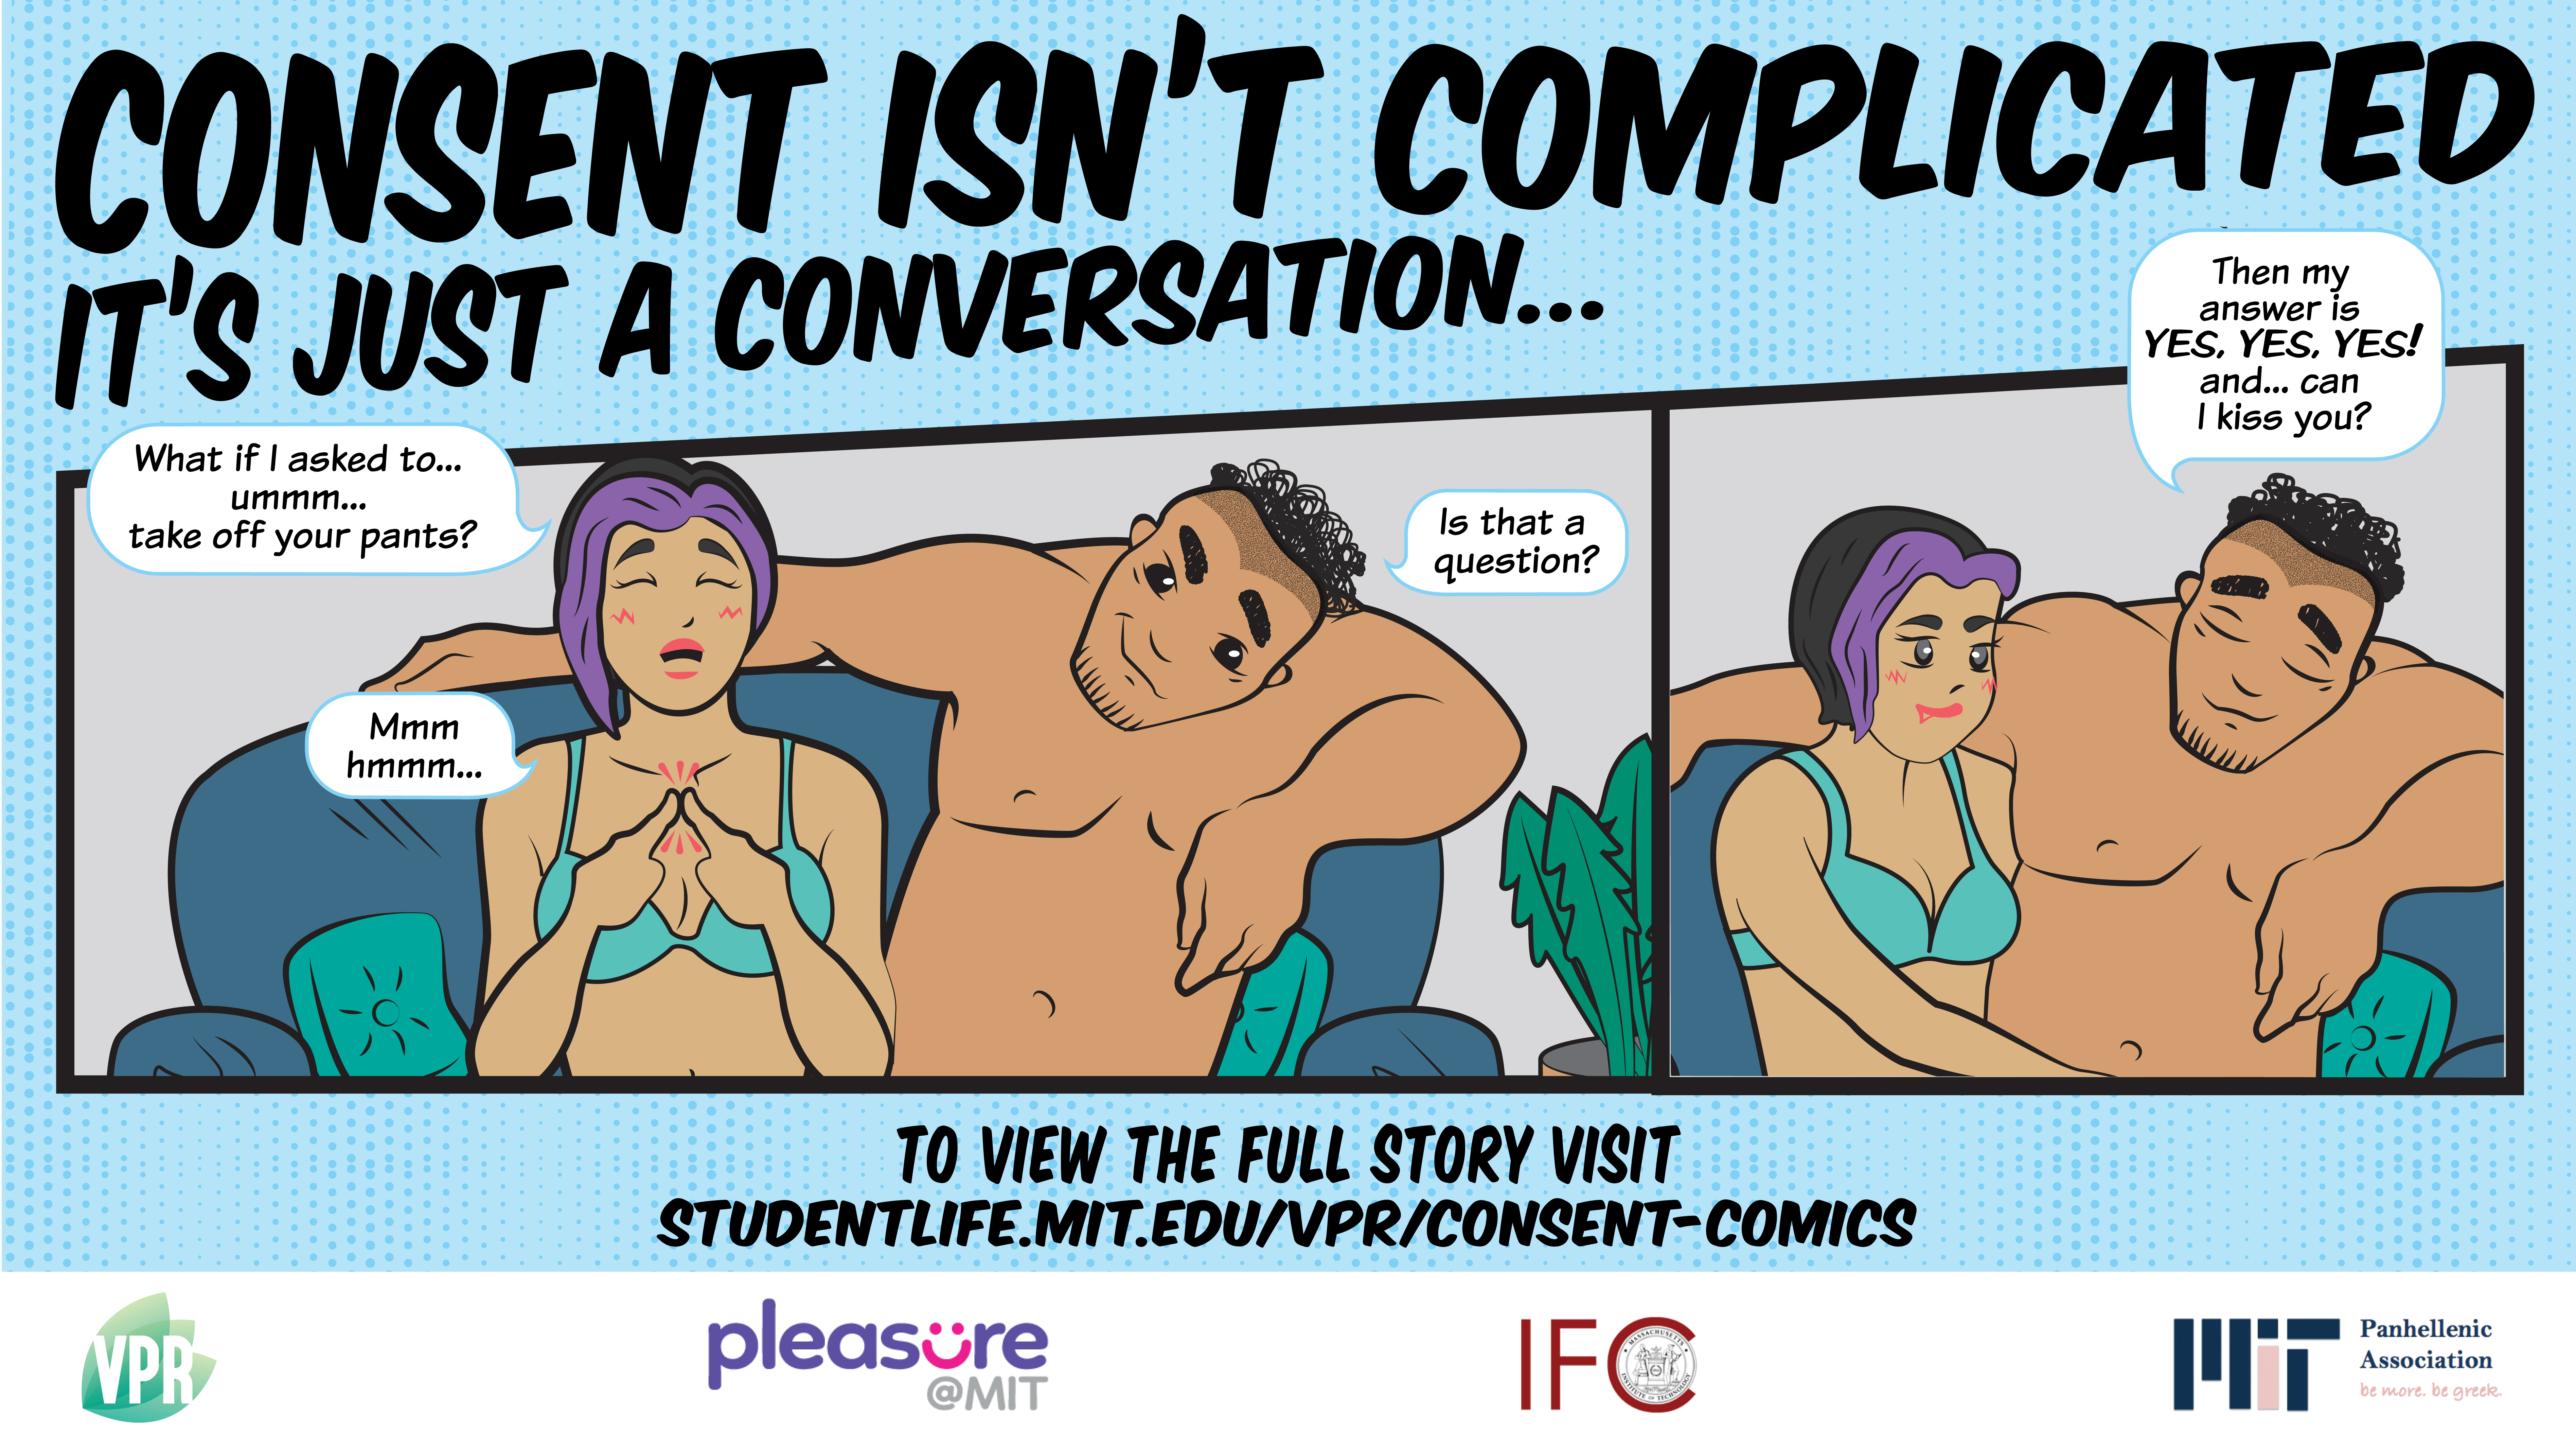 Consent Campaign volume 1 - Infinite Display 1